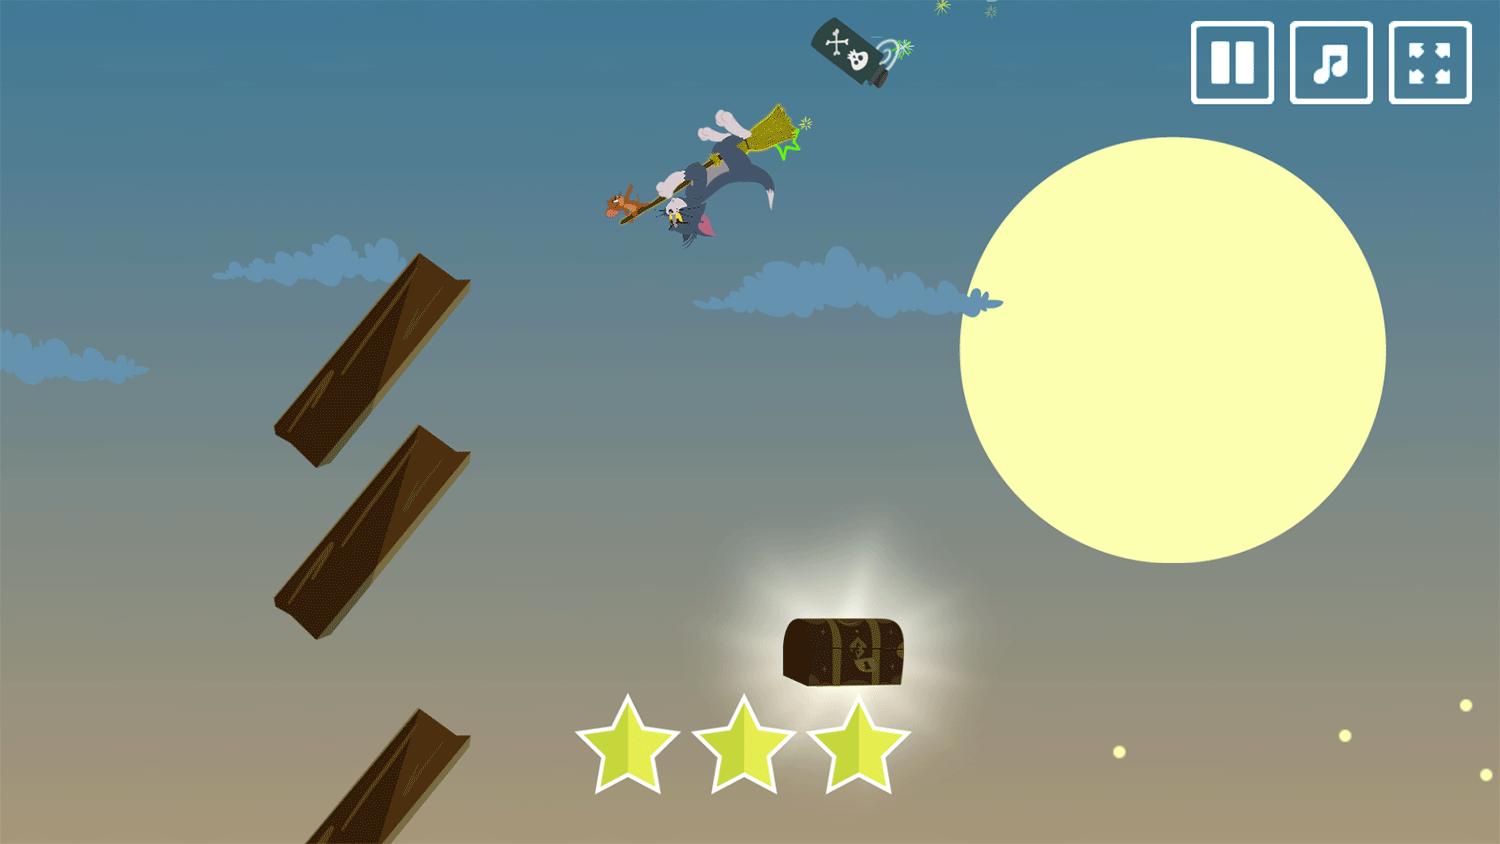 Tom and Jerry Broom Riders Game Screenshots.